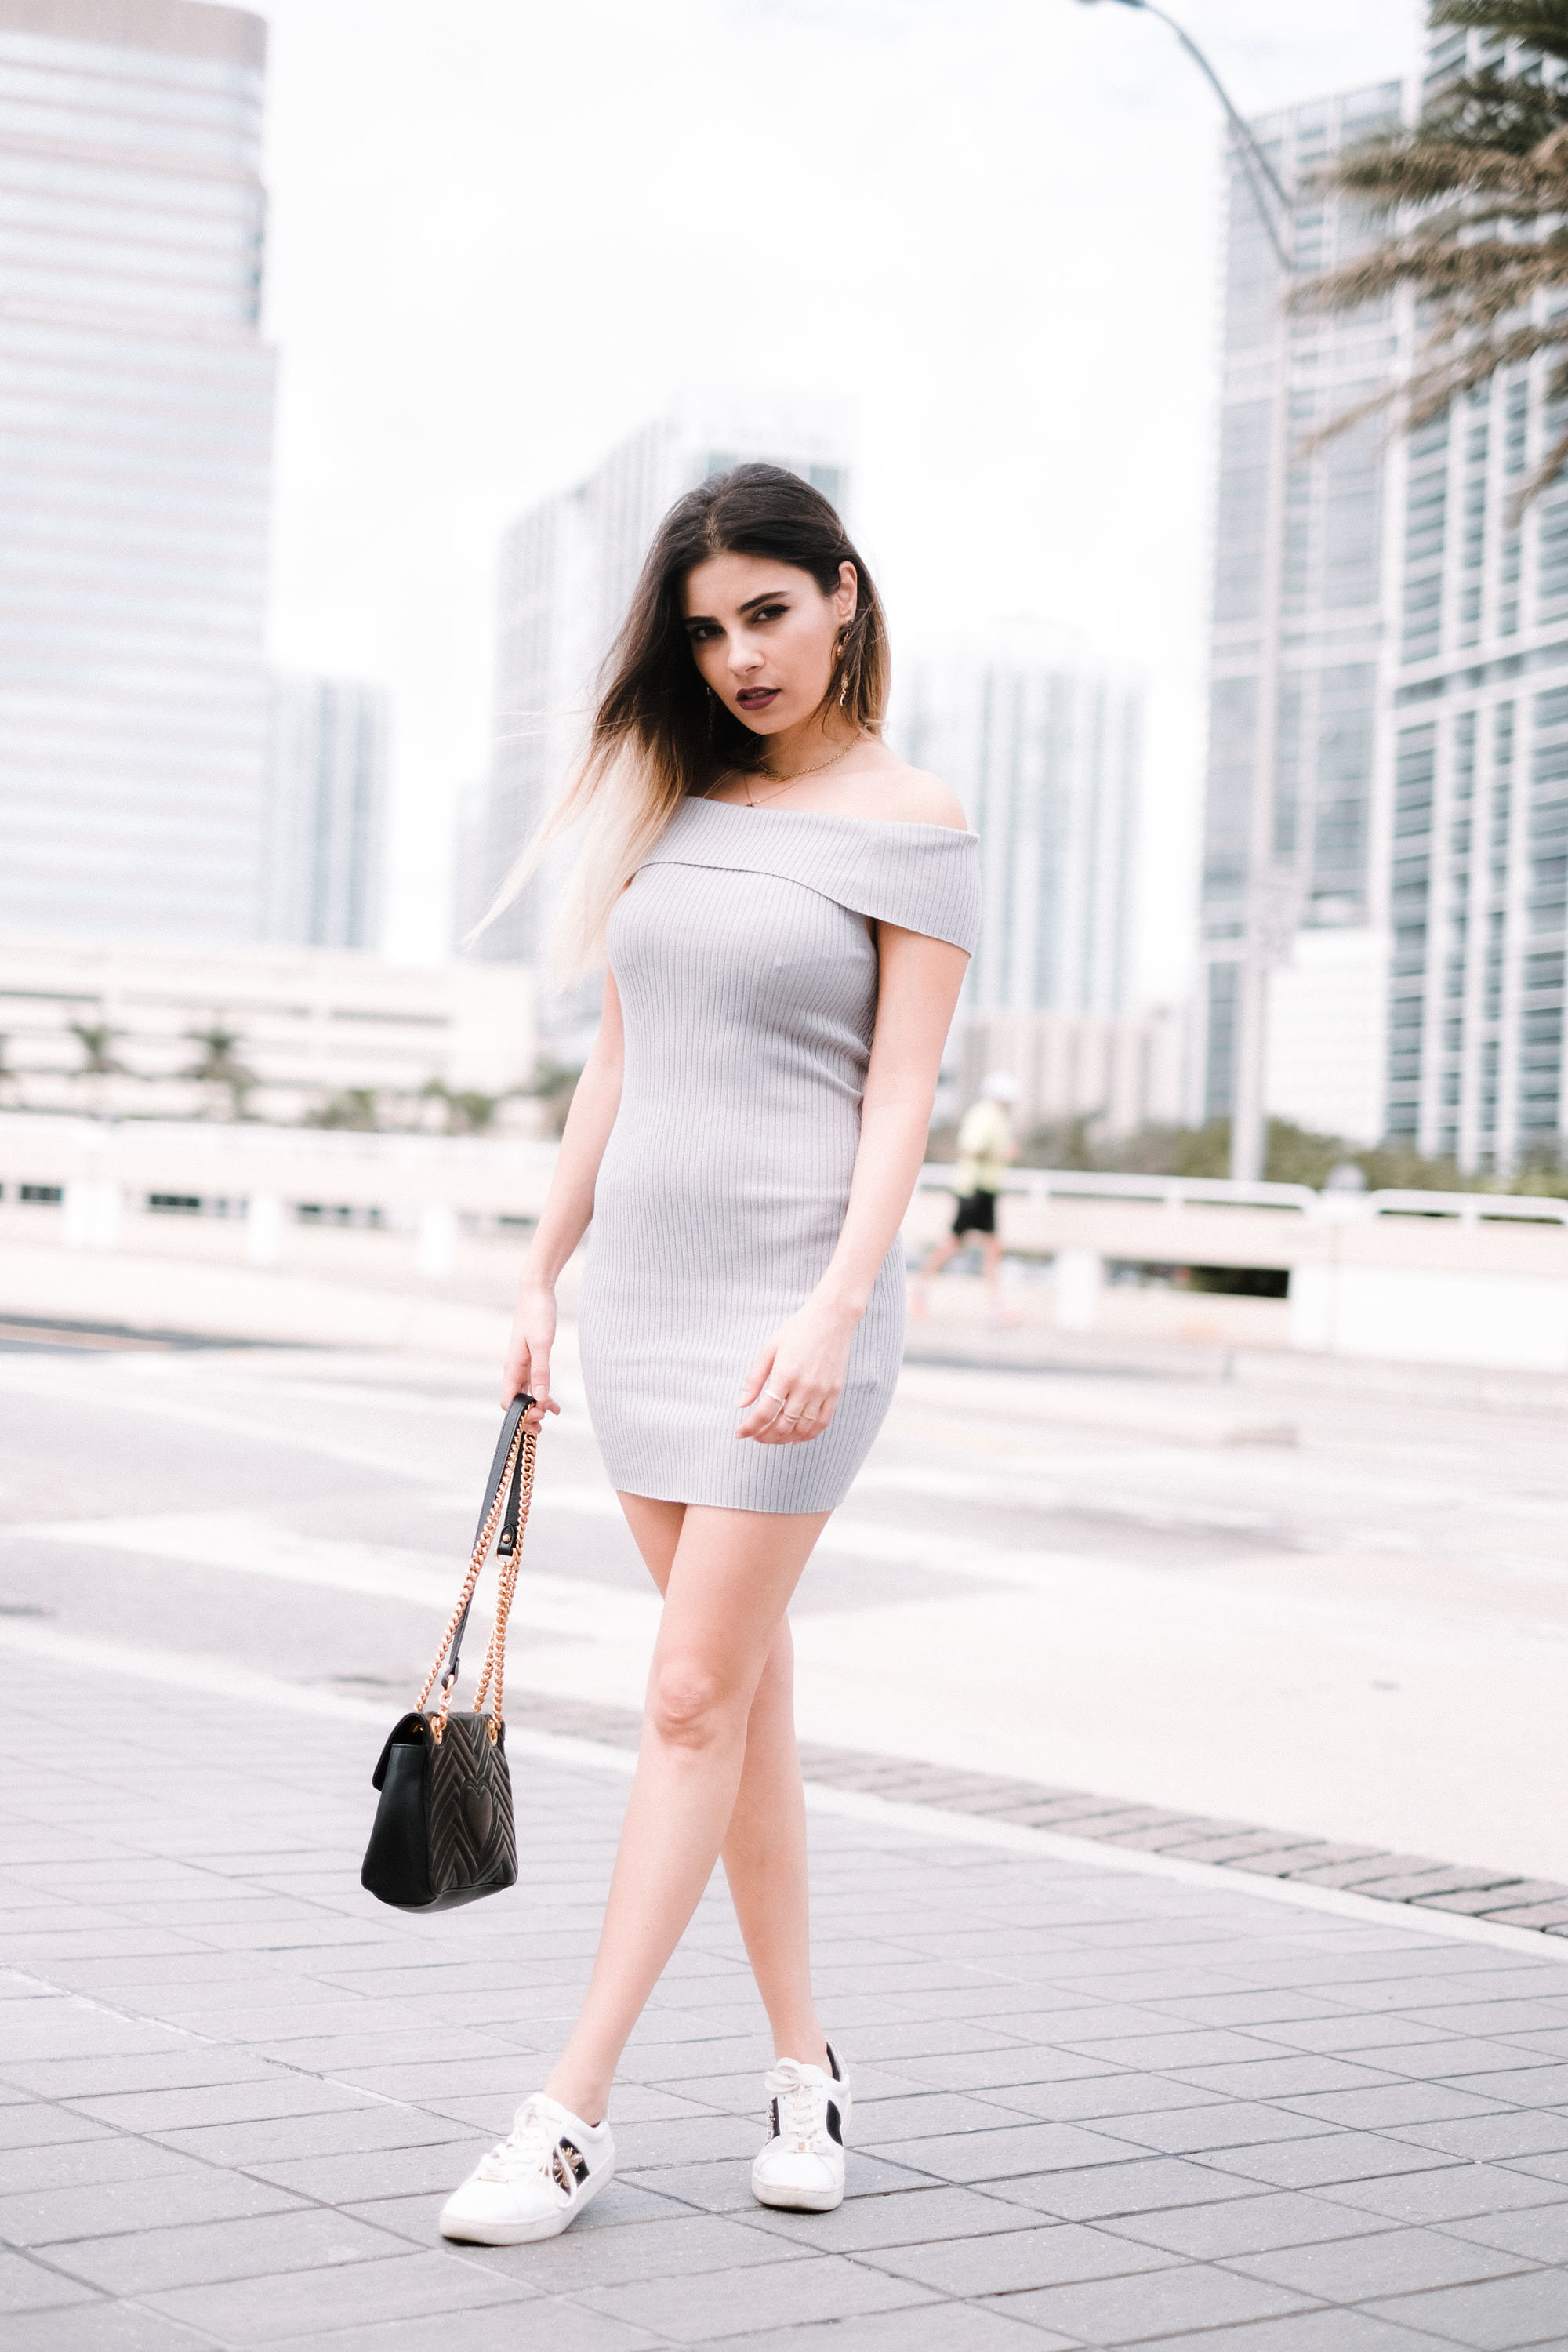 blog-photographer-miami-lucy-113